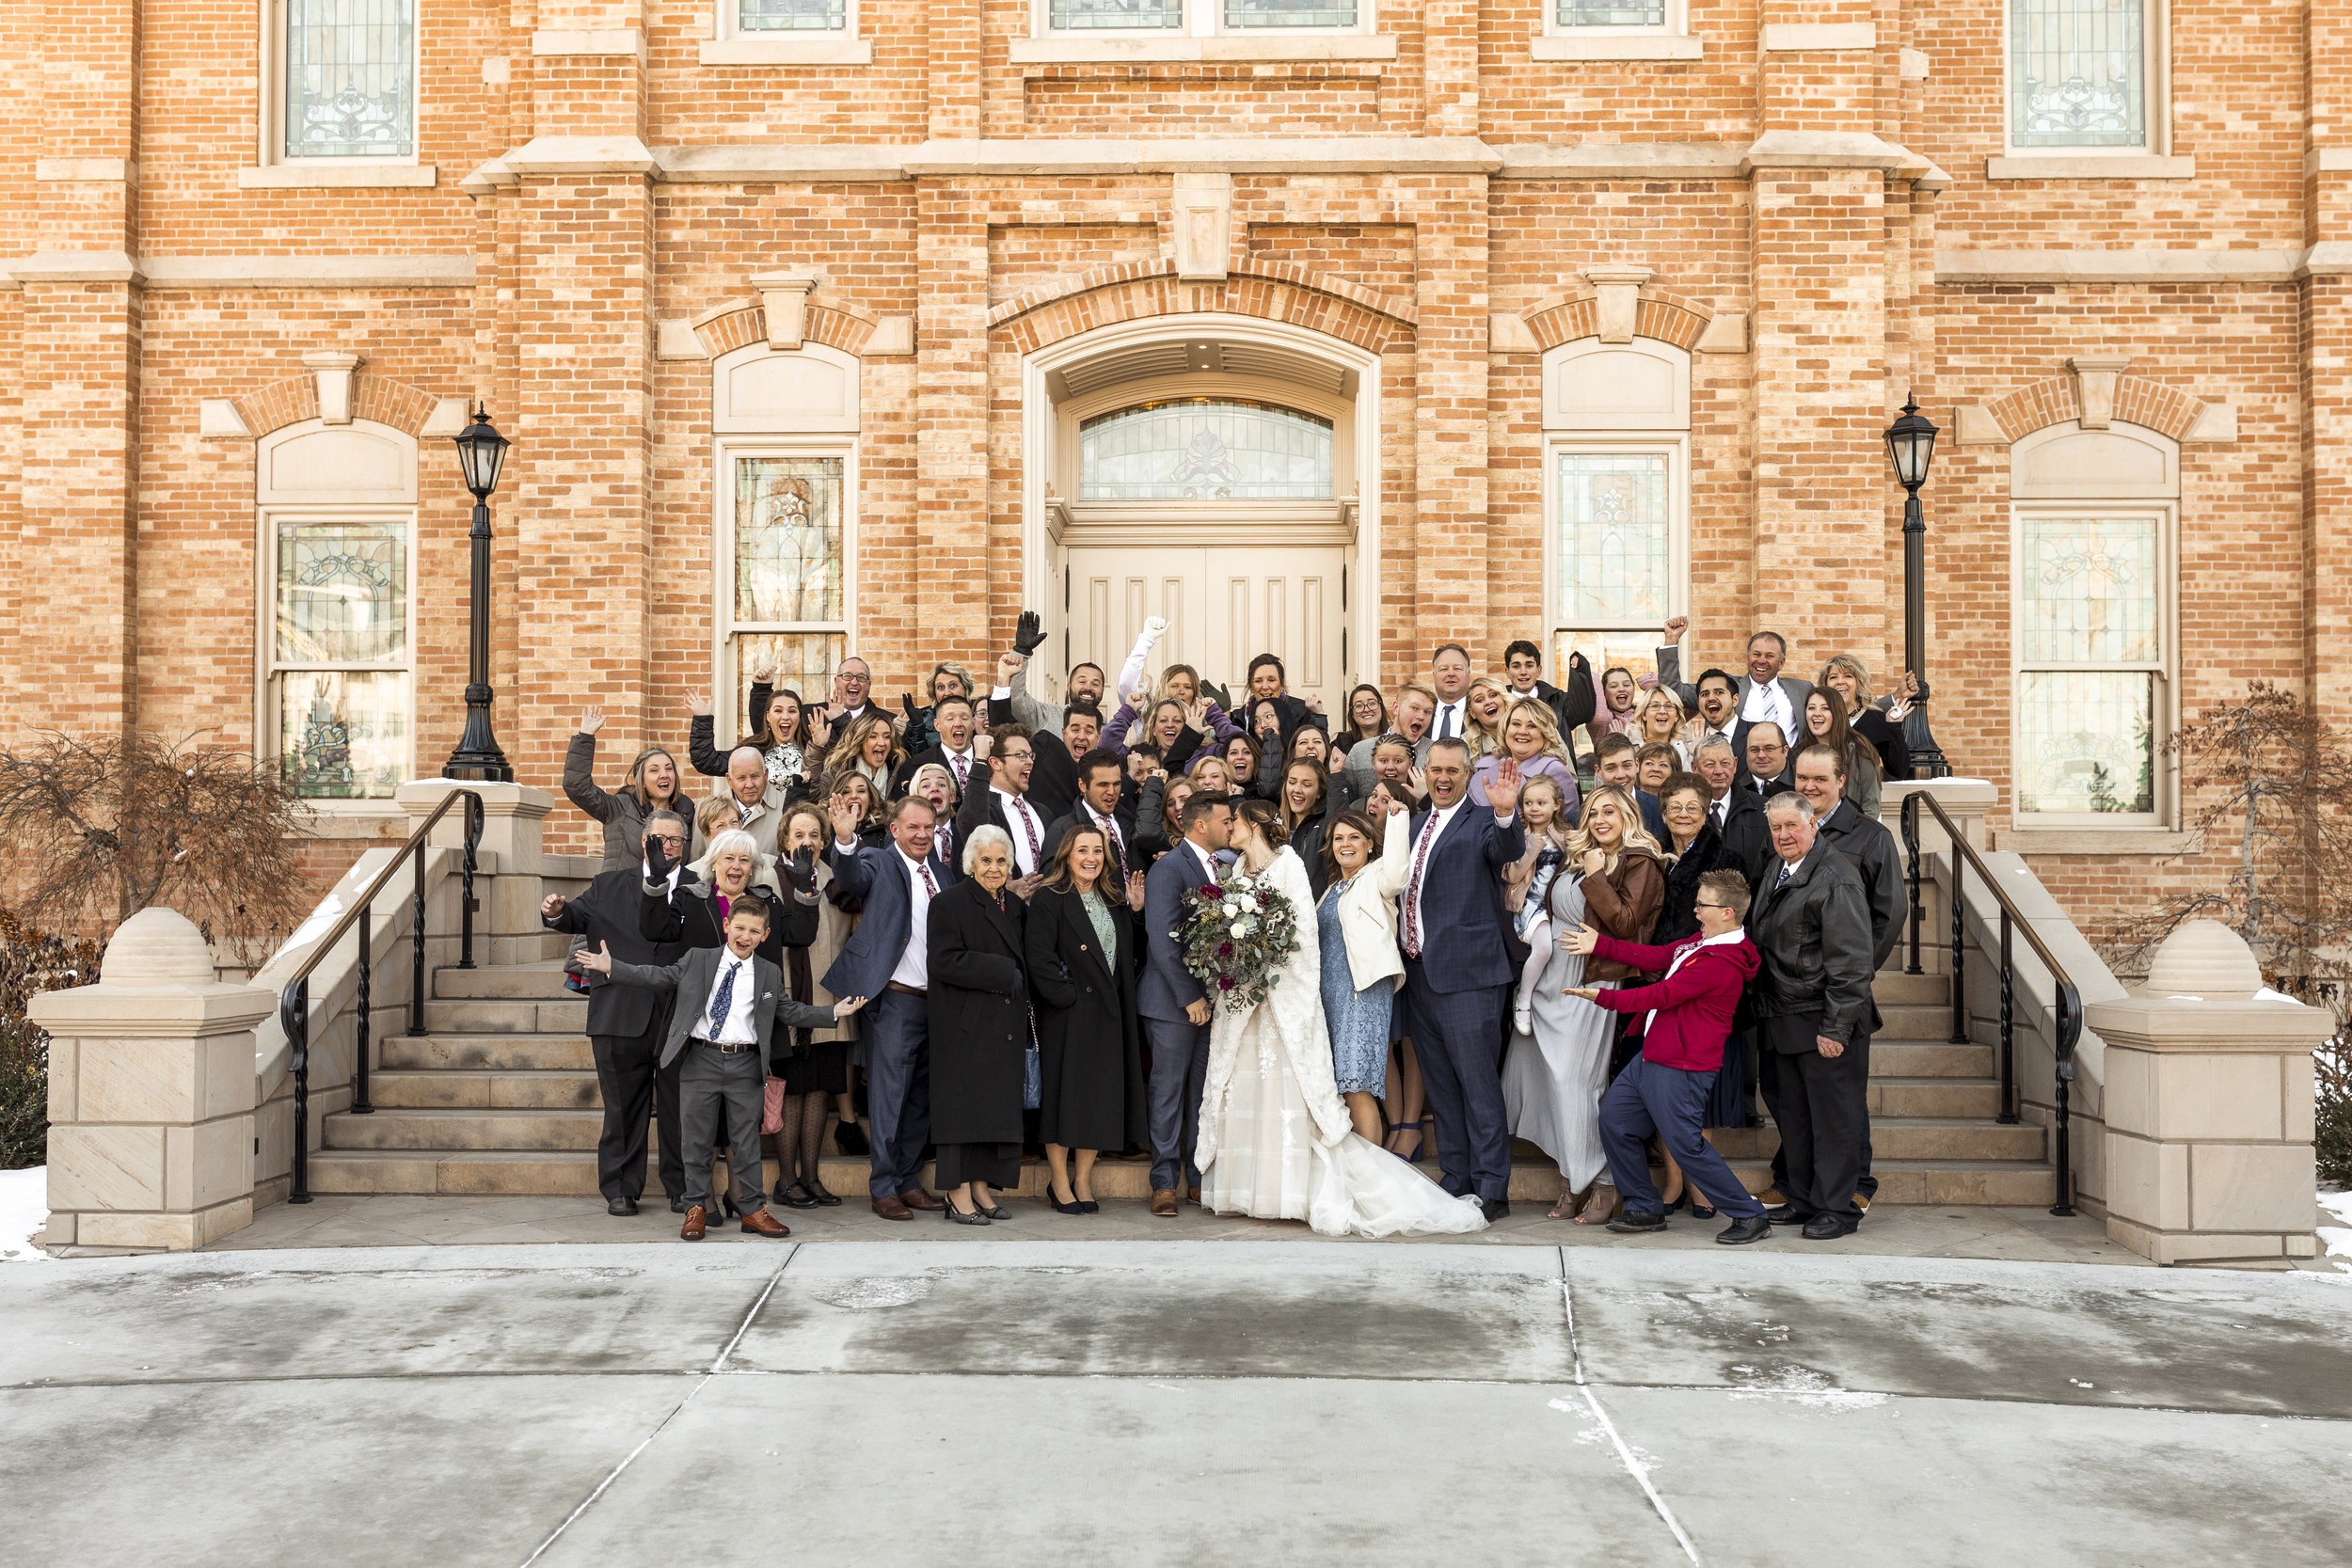 Skyler + Austin | Provo City Center Temple Wedding | Bri Bergman Photography 016.JPG